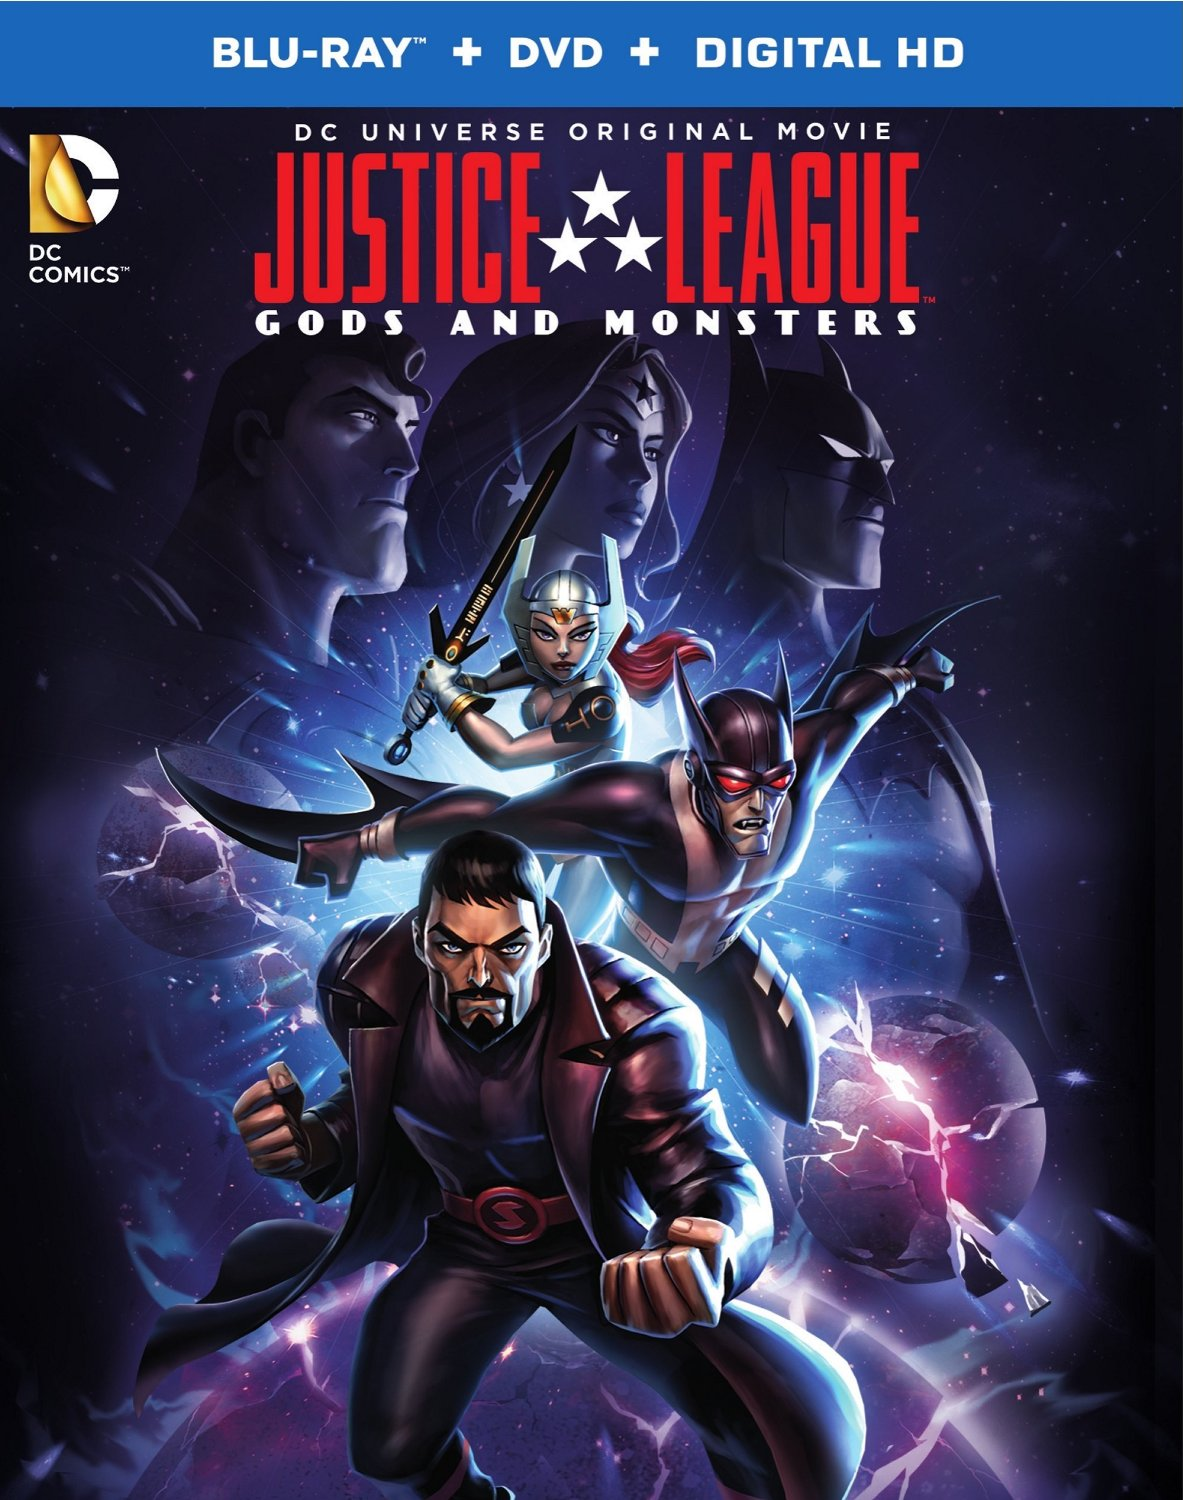 فيلم Justice League Gods and Monsters 2015 مترجم